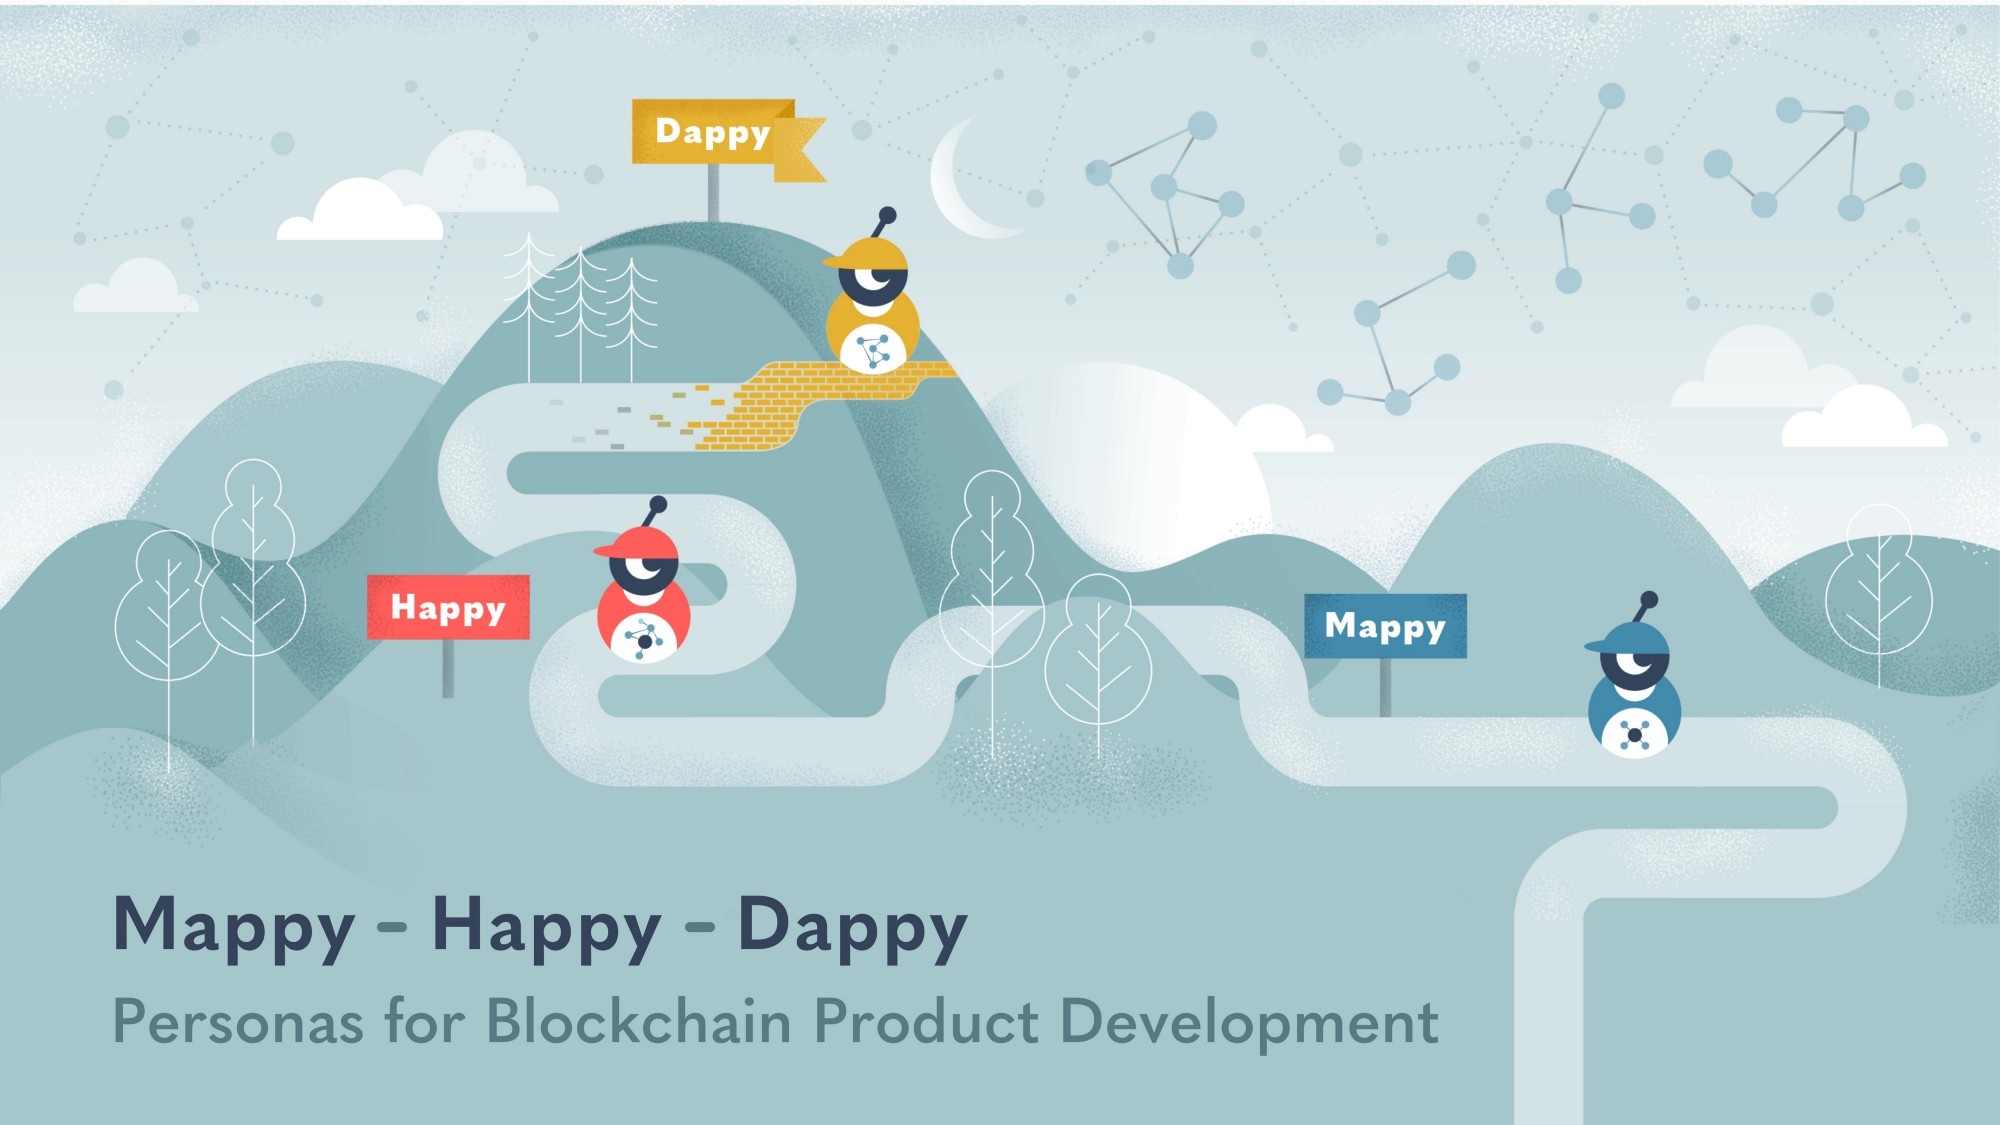 Meet Mappy, Happy, and Dappy: Personas for Blockchain Product Management